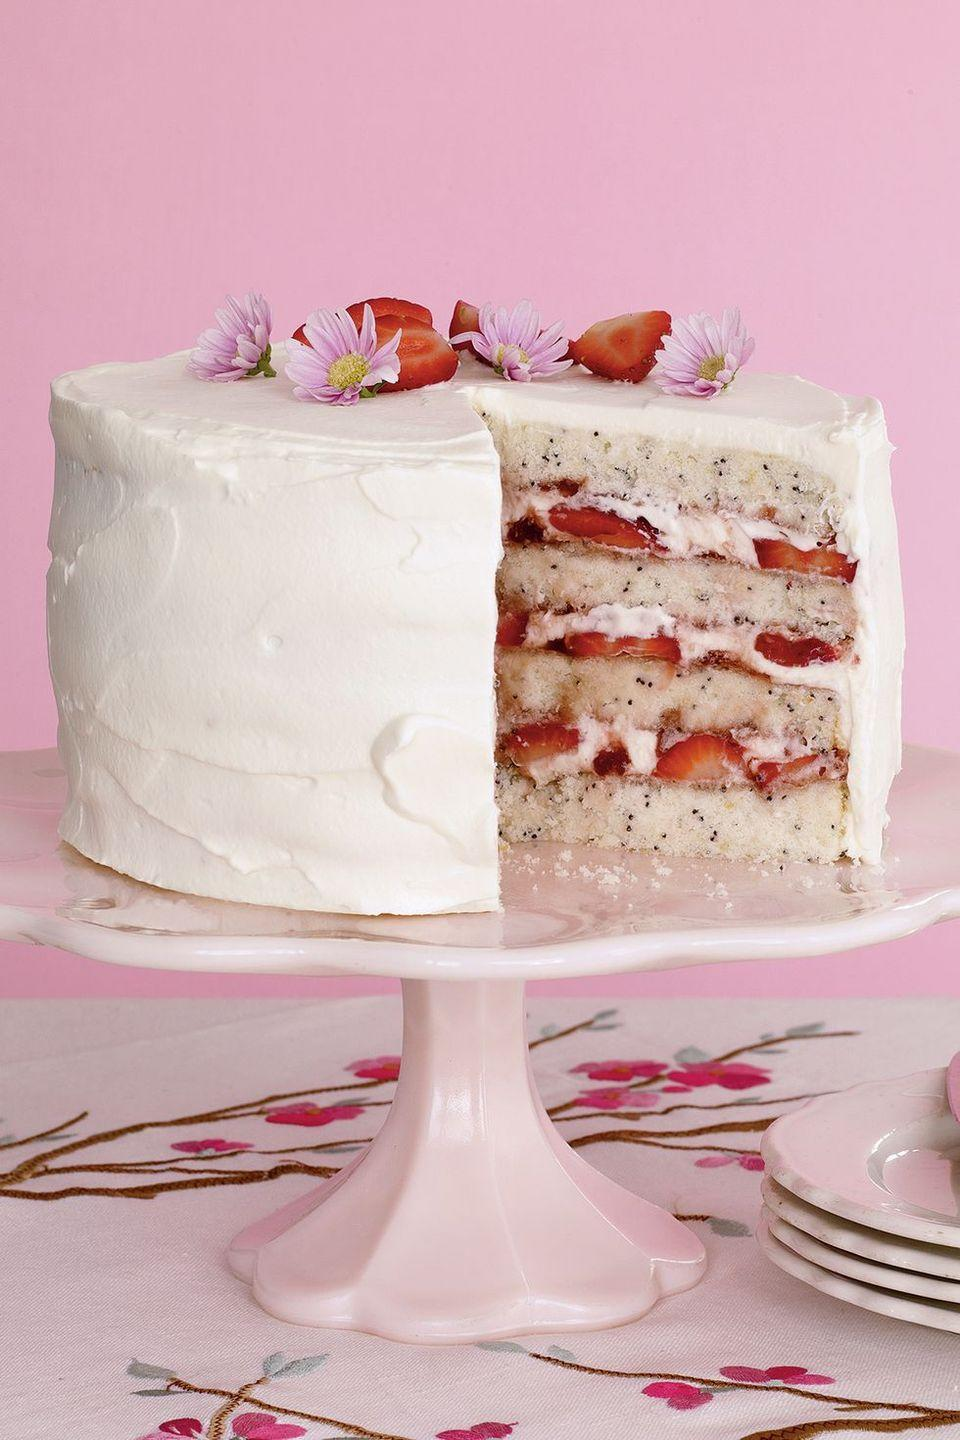 """<p>This cake tastes as good as it looks: you'll get jammy strawberries, lemon zest, and white chocolate whipped cream frosting in every bite.</p><p><em><a href=""""https://www.womansday.com/food-recipes/food-drinks/recipes/a10913/lemon-poppy-seed-cake-strawberries-recipe-122355/"""" rel=""""nofollow noopener"""" target=""""_blank"""" data-ylk=""""slk:Get the recipe from Woman's Day »"""" class=""""link rapid-noclick-resp"""">Get the recipe from Woman's Day »</a></em></p><p><strong>RELATED: </strong><a href=""""https://www.goodhousekeeping.com/food-recipes/dessert/g4299/strawberry-desserts/"""" rel=""""nofollow noopener"""" target=""""_blank"""" data-ylk=""""slk:20 Sweet Strawberry Desserts for Spring and Summer"""" class=""""link rapid-noclick-resp"""">20 Sweet Strawberry Desserts for Spring and Summer</a><br></p>"""